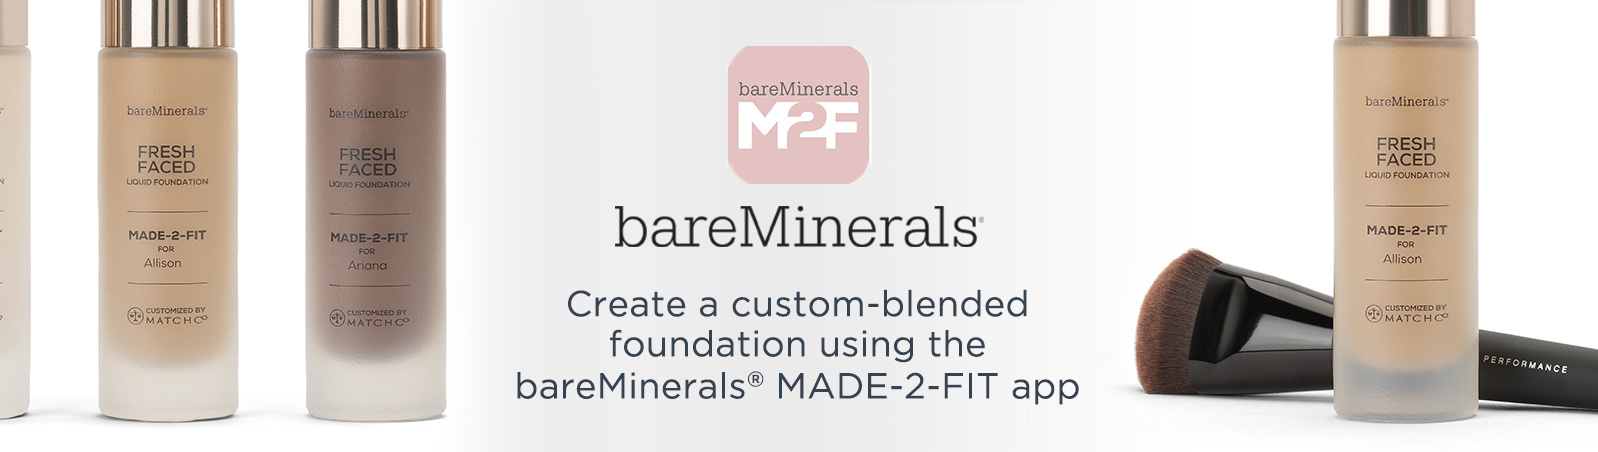 bareMinerals®. Create a custom-blended foundation using the bareMinerals® MADE-2-FIT app